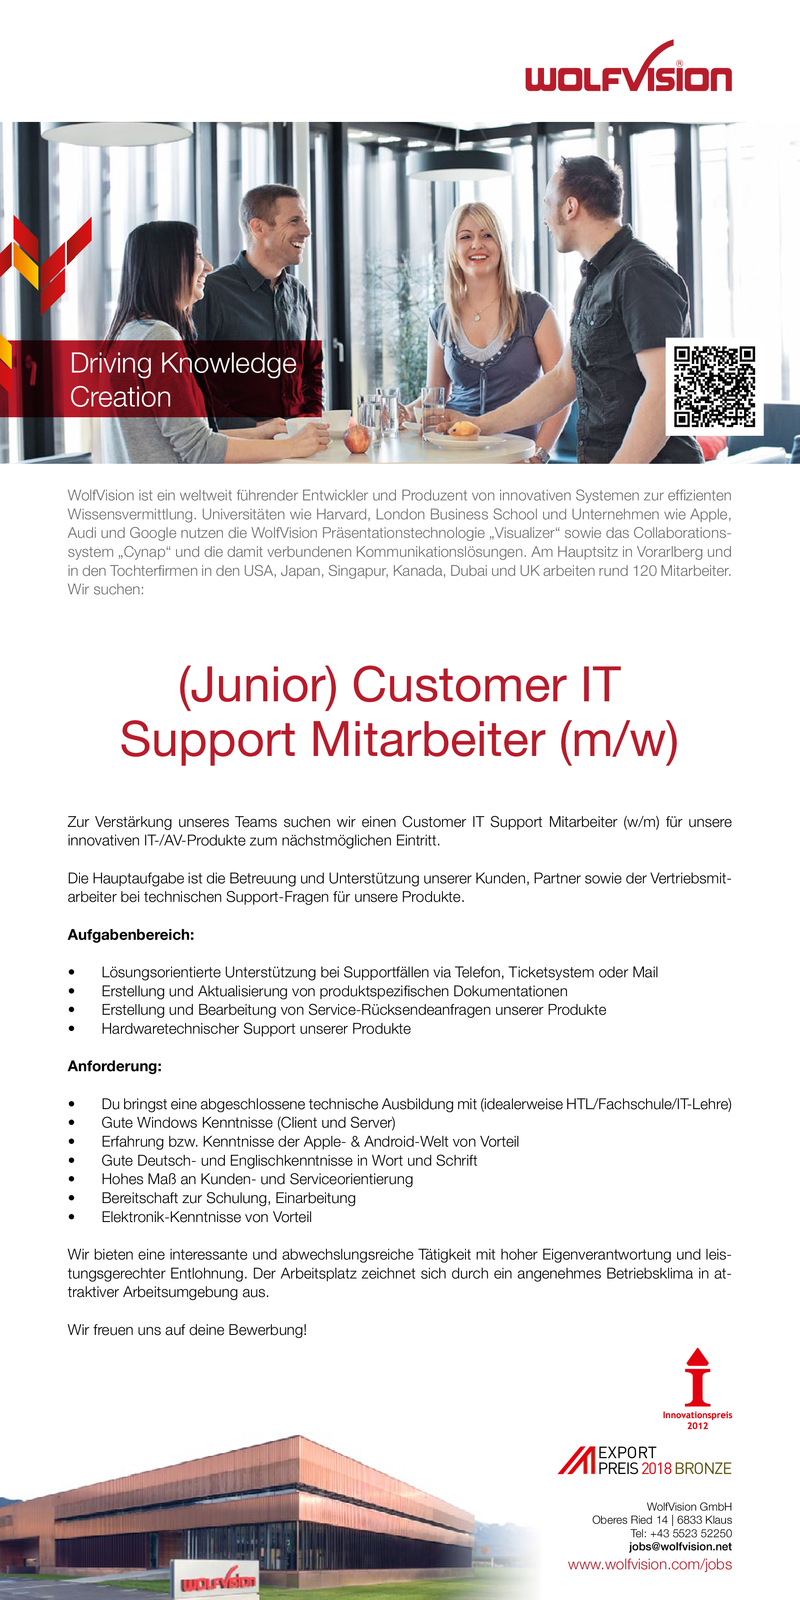 (Junior) Customer IT Support Mitarbeiter (m/w)